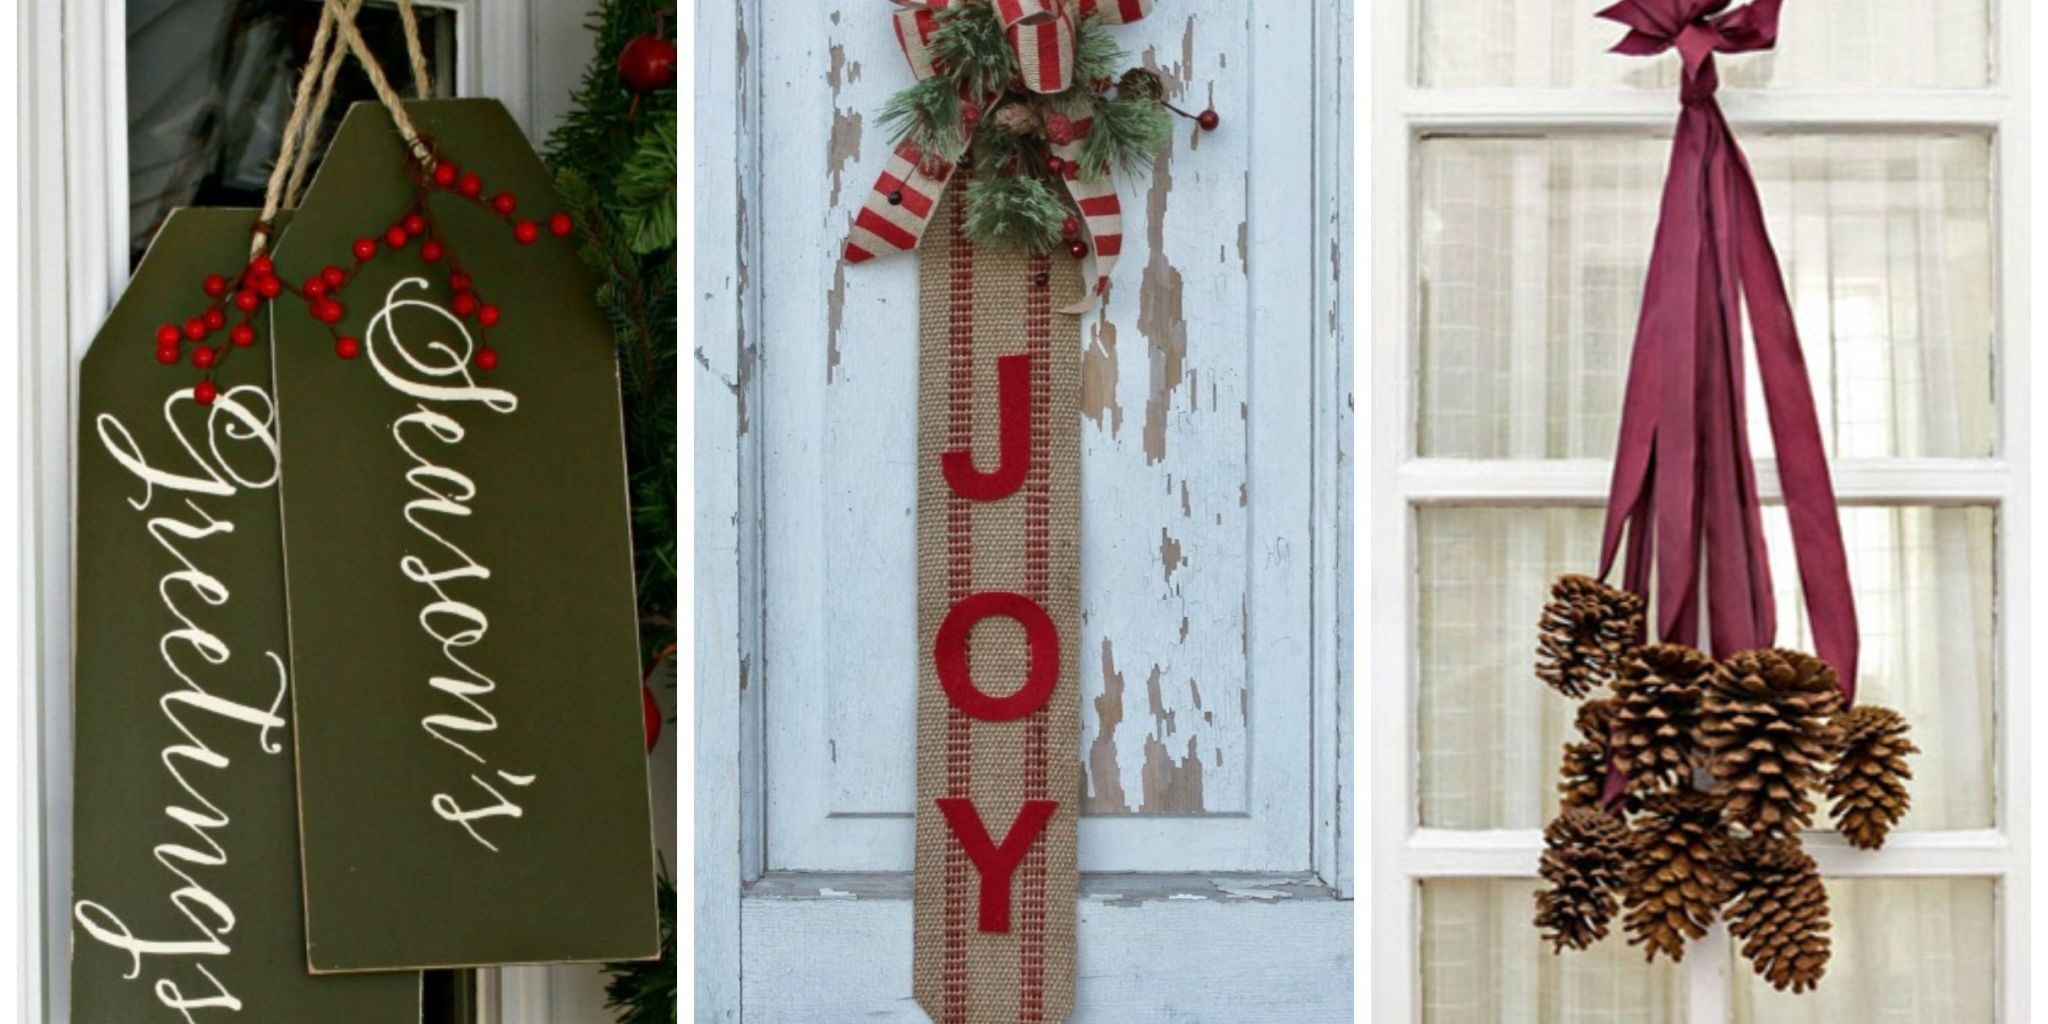 These Out Of The Box DIY Door Decorations Will Brighten Up Your Front Porch  And Help Spread The Christmas Cheer This Holiday Season.